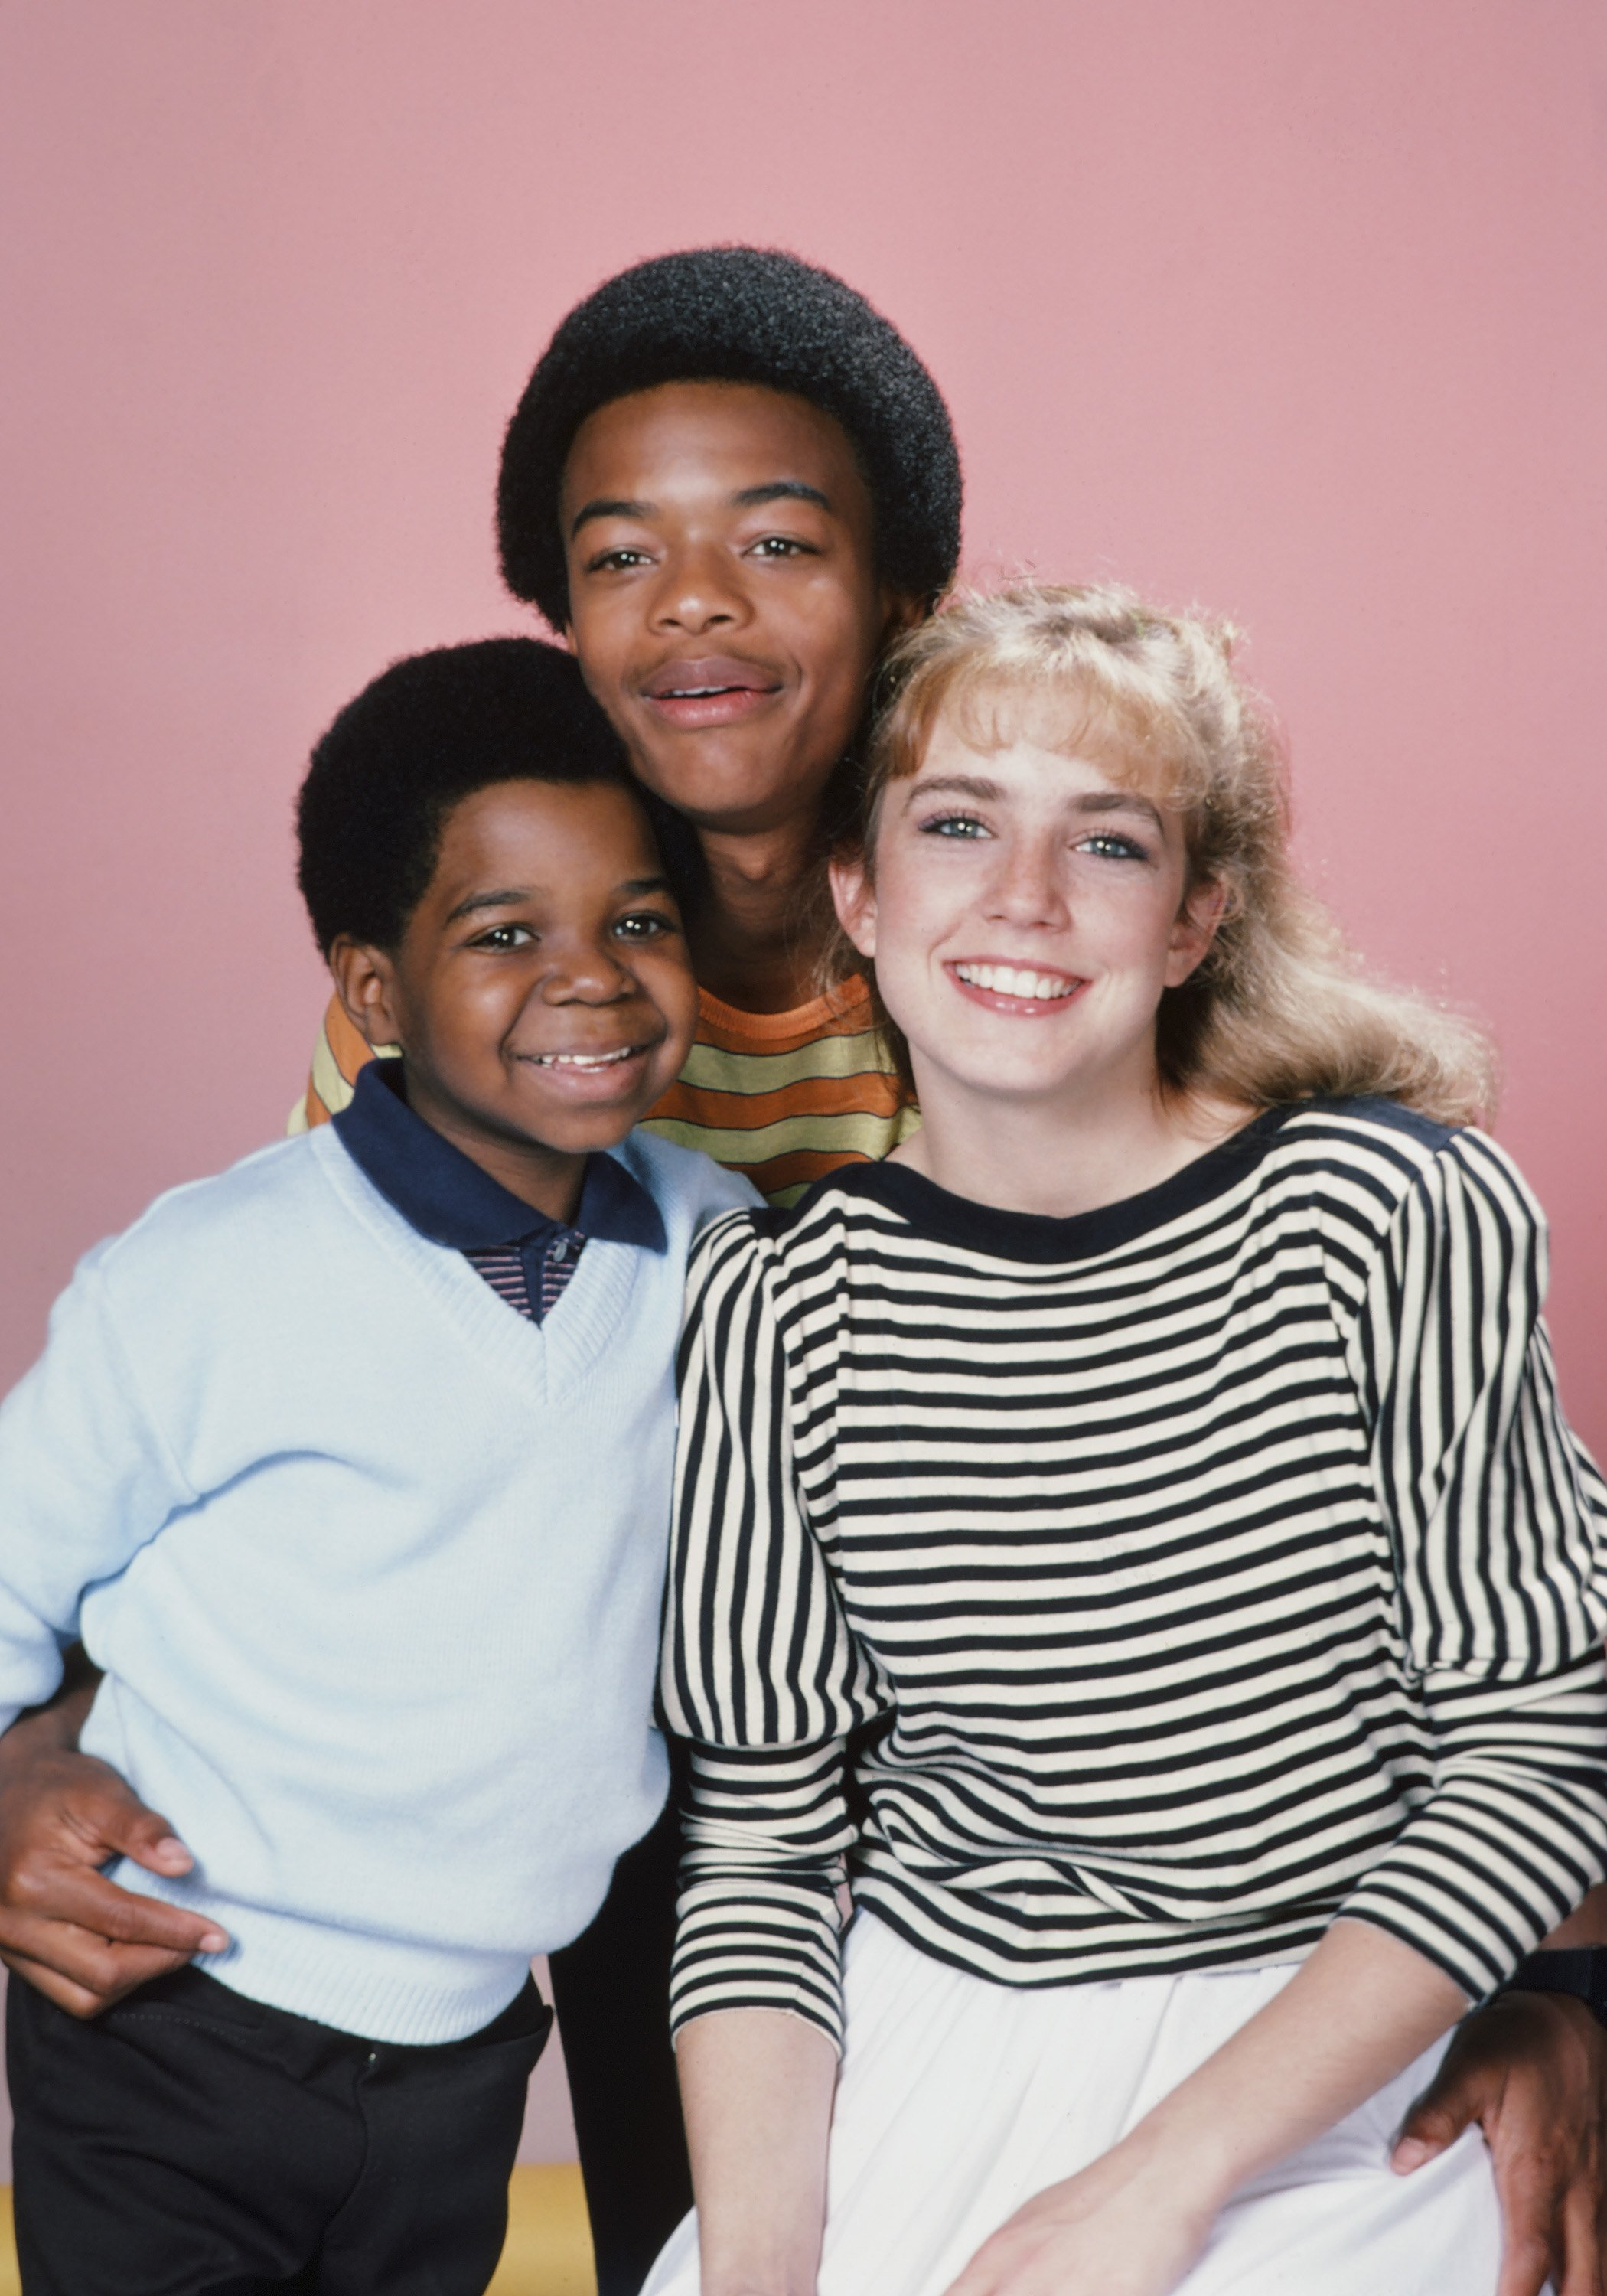 """Gary Coleman as Arnold Jackson, Todd Bridges as Willis Jackson, and Dana Plato as Kimberly Drummond during """"Diff'rent Strokes"""" Season 5. I Image: Getty Images."""